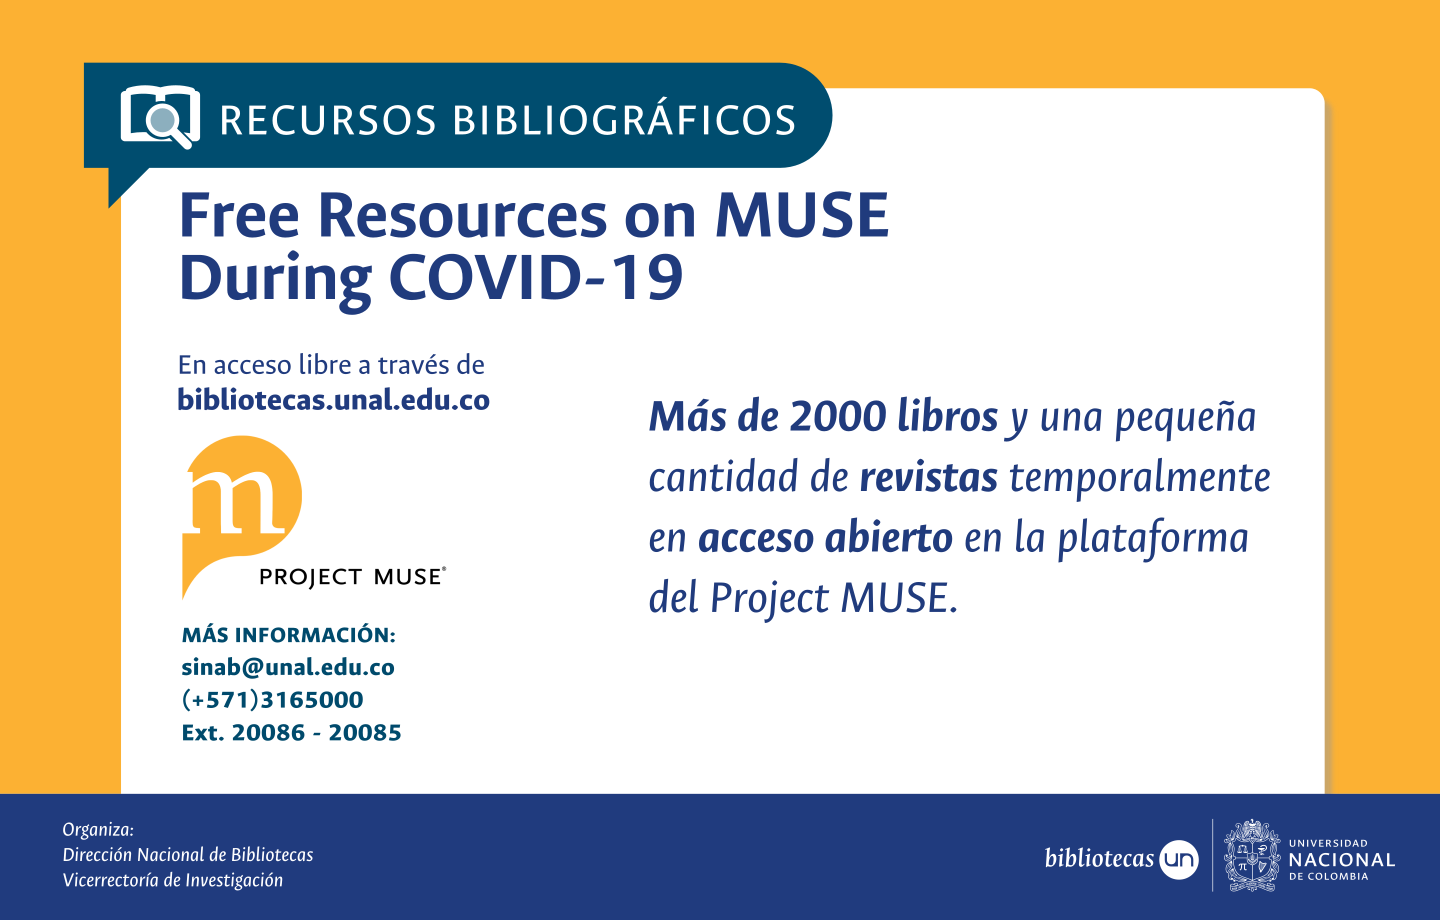 Free Resources on MUSE During COVID-19